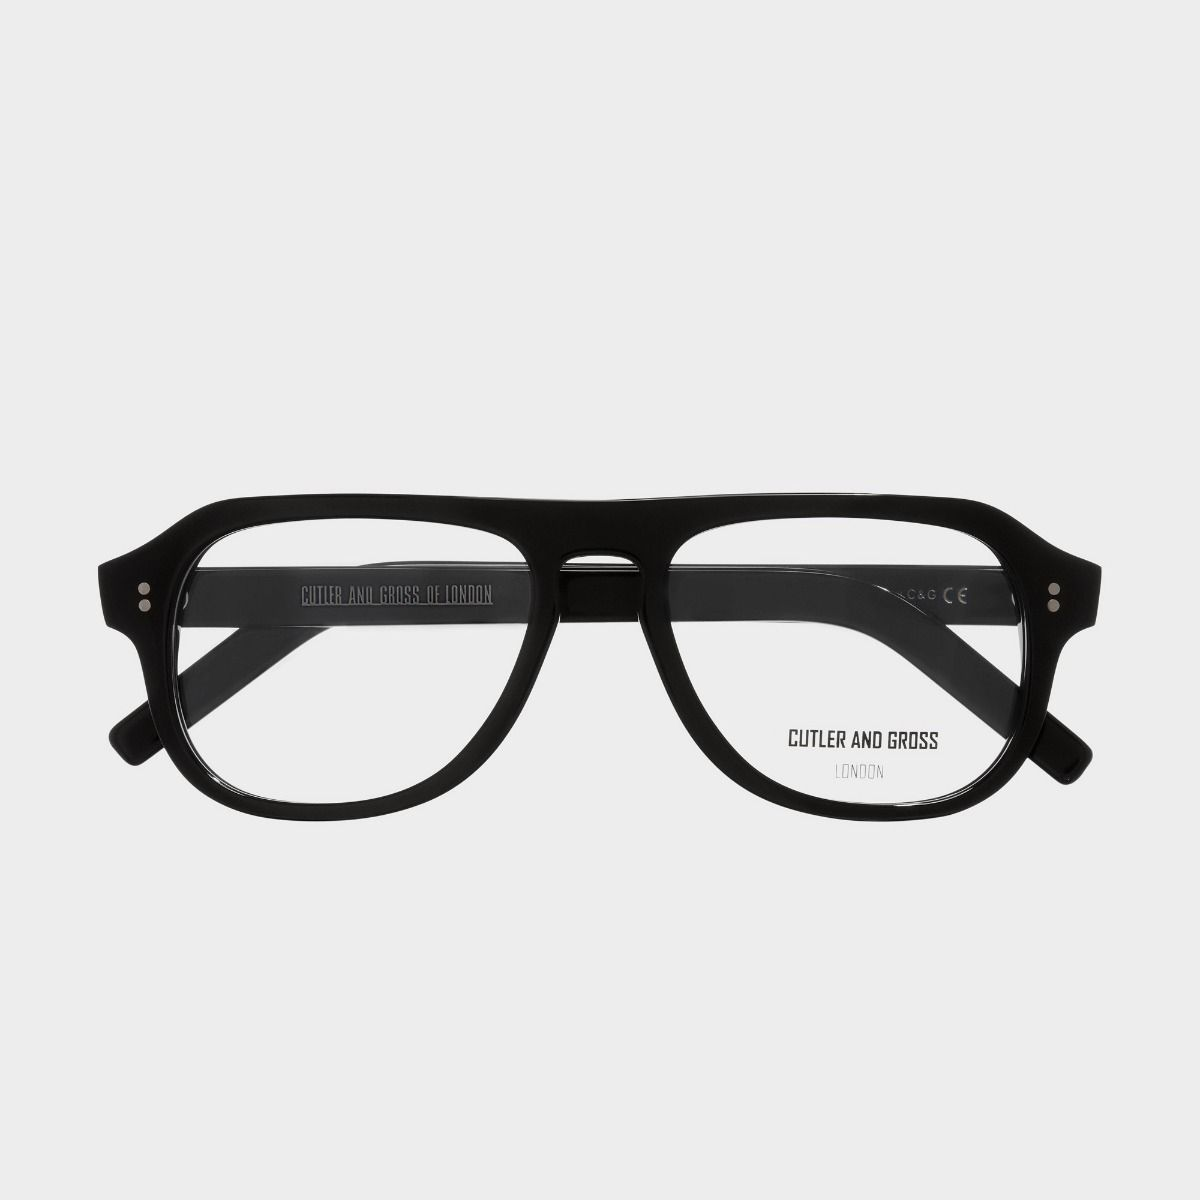 0822V3 Optical Aviator Glasses (Large)-Black